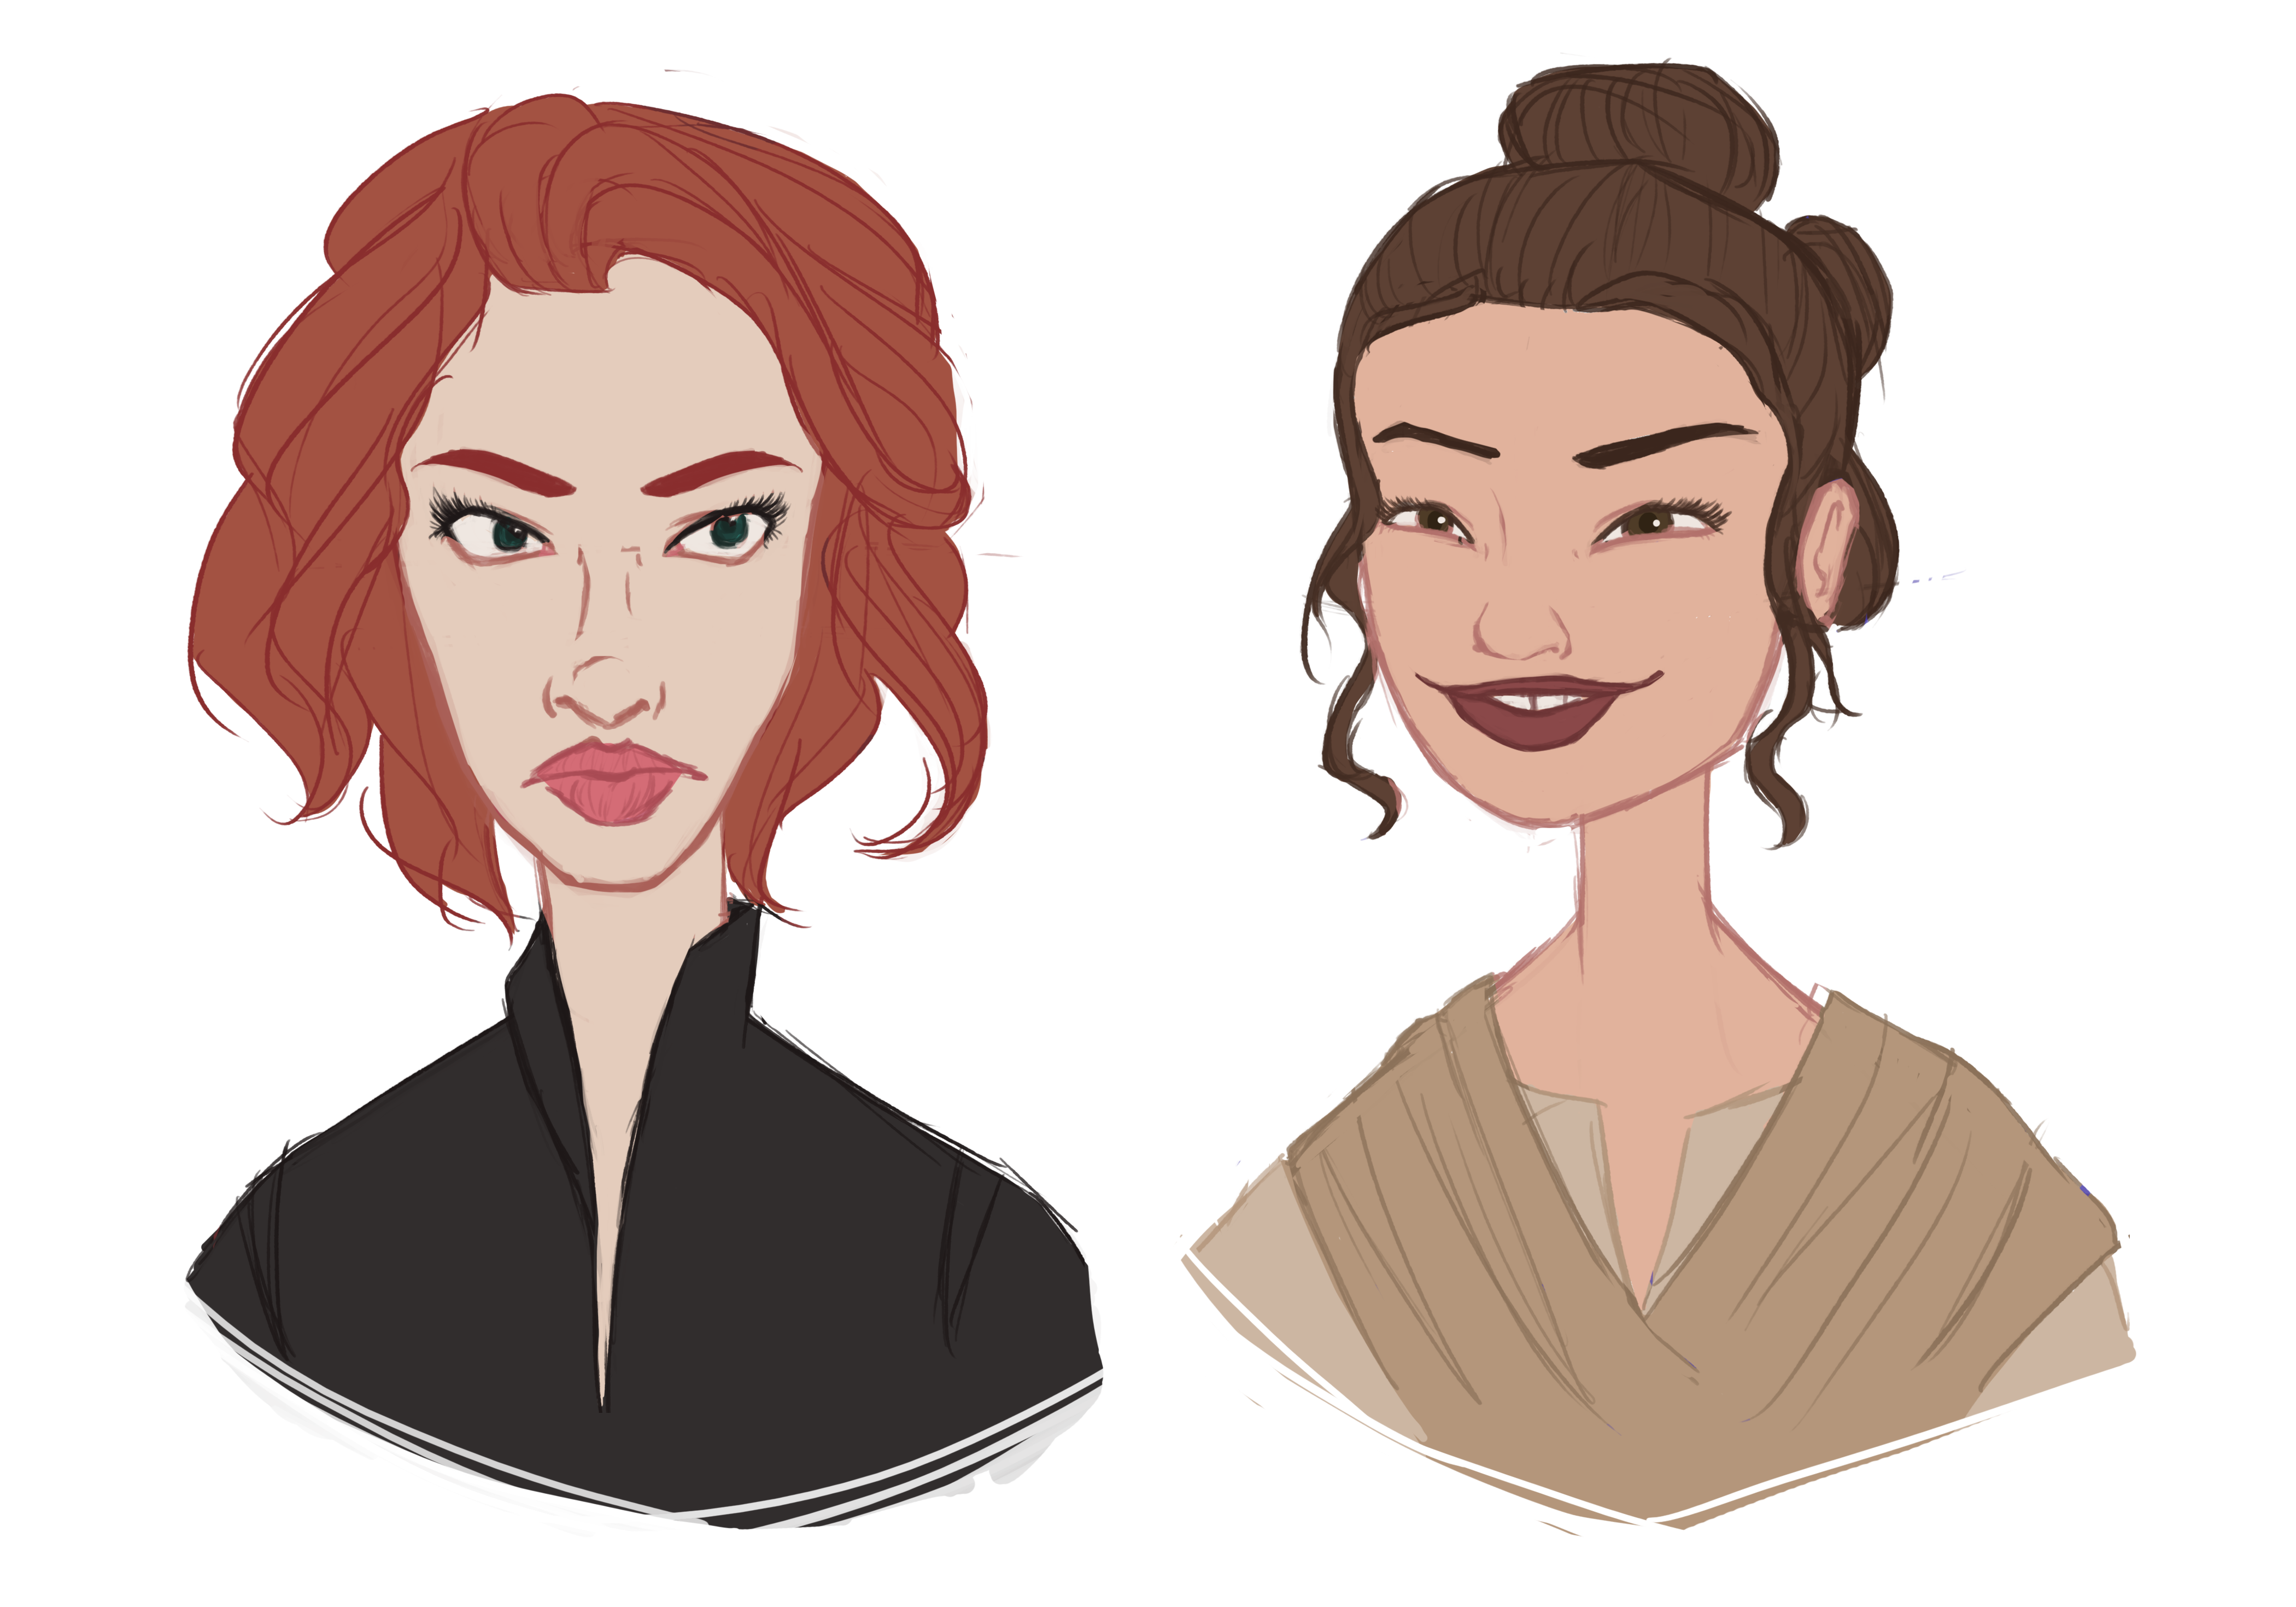 Rey star wars png transparent. Character caricature scarlett daisy